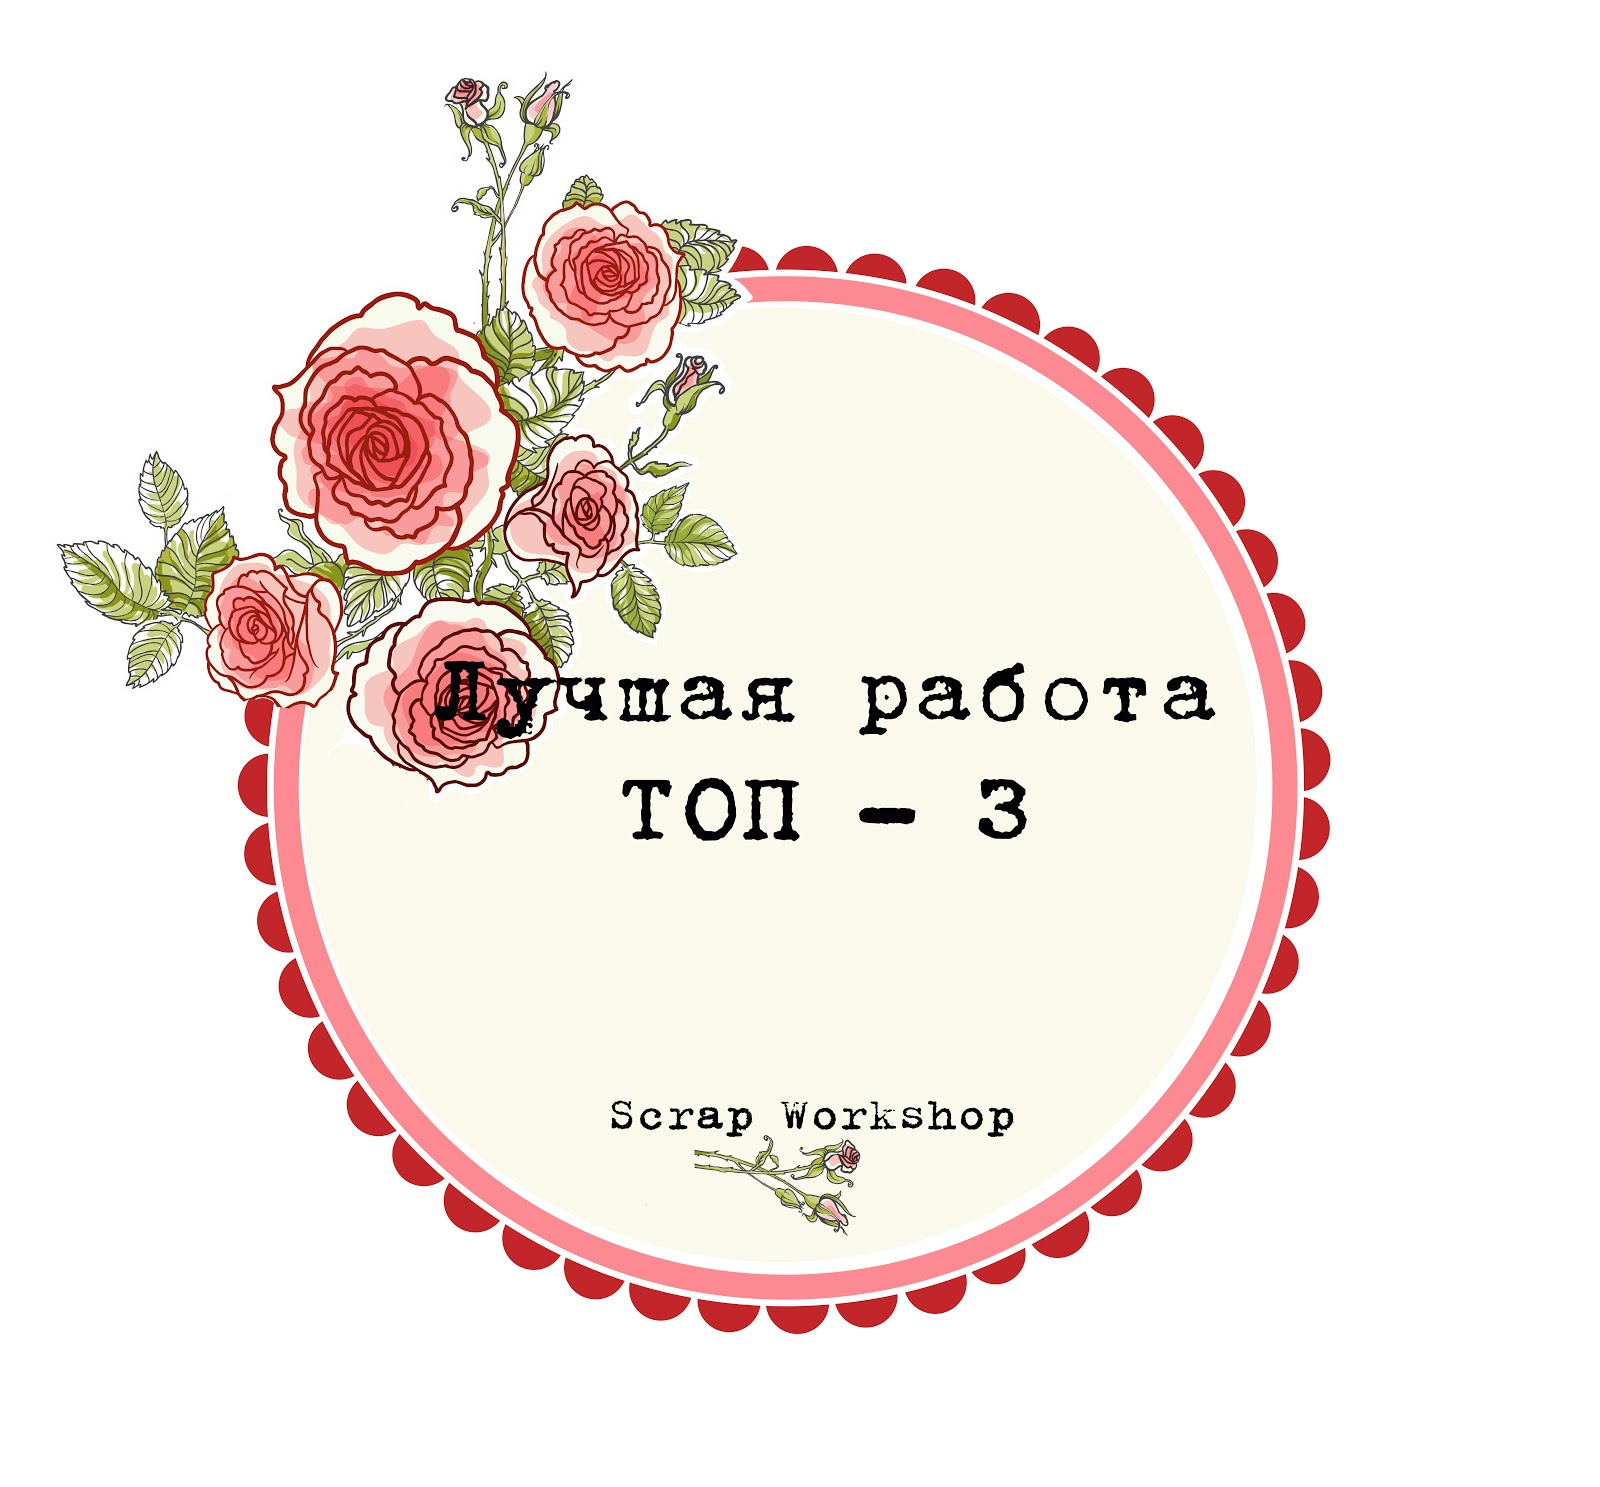 Топ-3 в Scrap Workshop